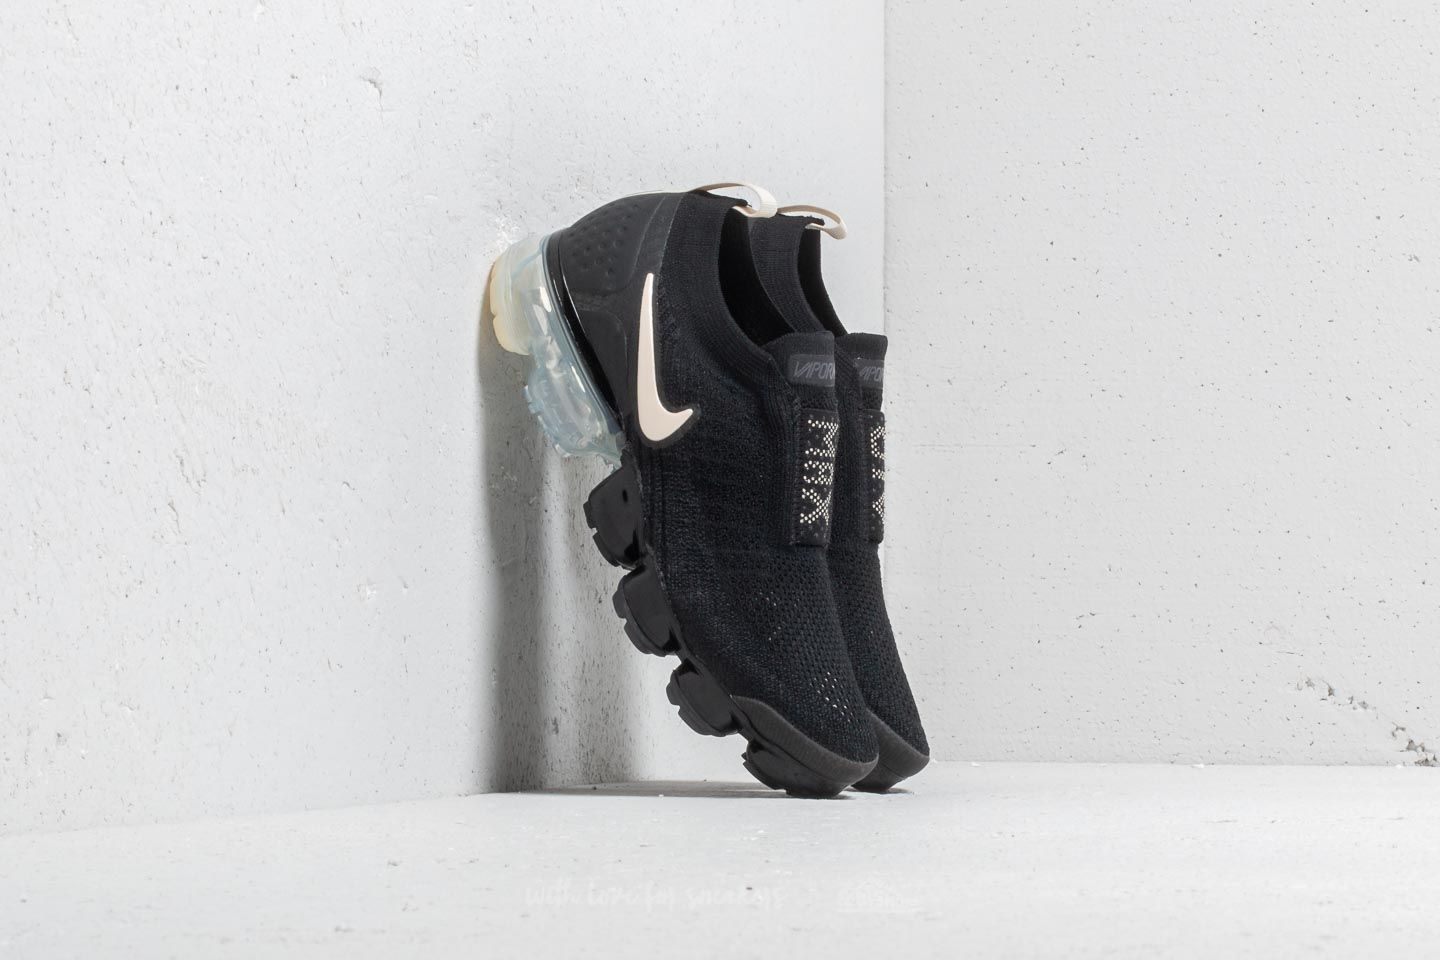 outlet store d1b16 7138b Nike Wmns Air Vapormax Flyknit Moc 2 Black  Light Cream-White at a great